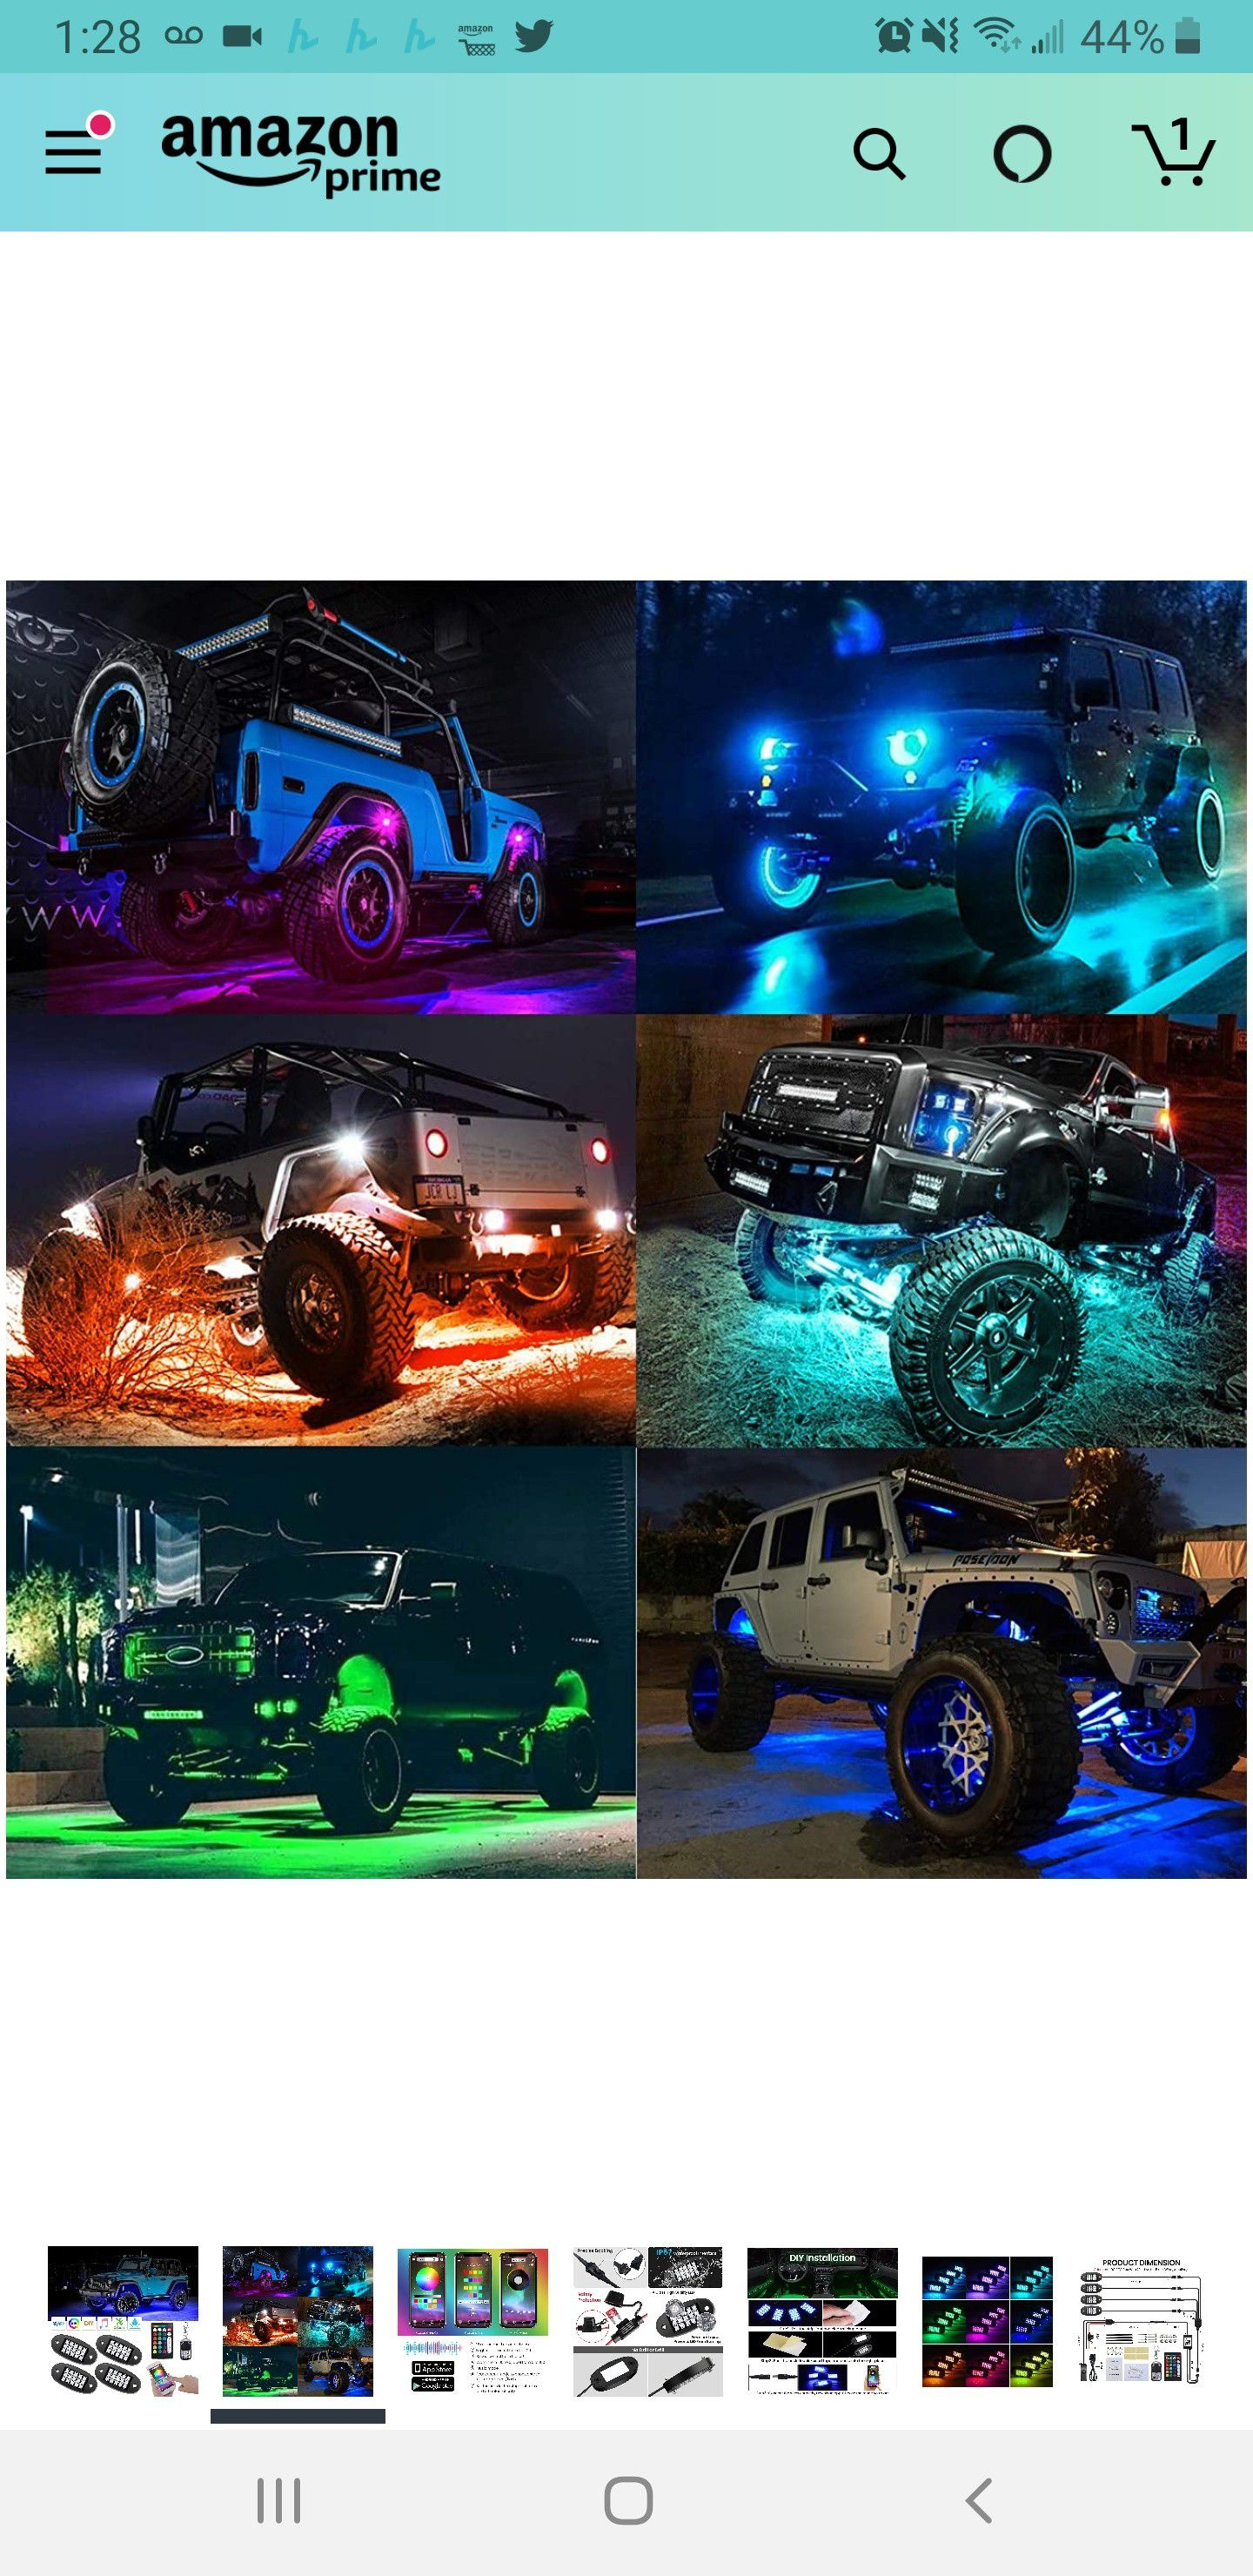 New in sealed box, RGB LED Rock Lights, 90 LEDs Multicolor Neon Underglow Waterproof Music Lighting Kit with APP & RF Control